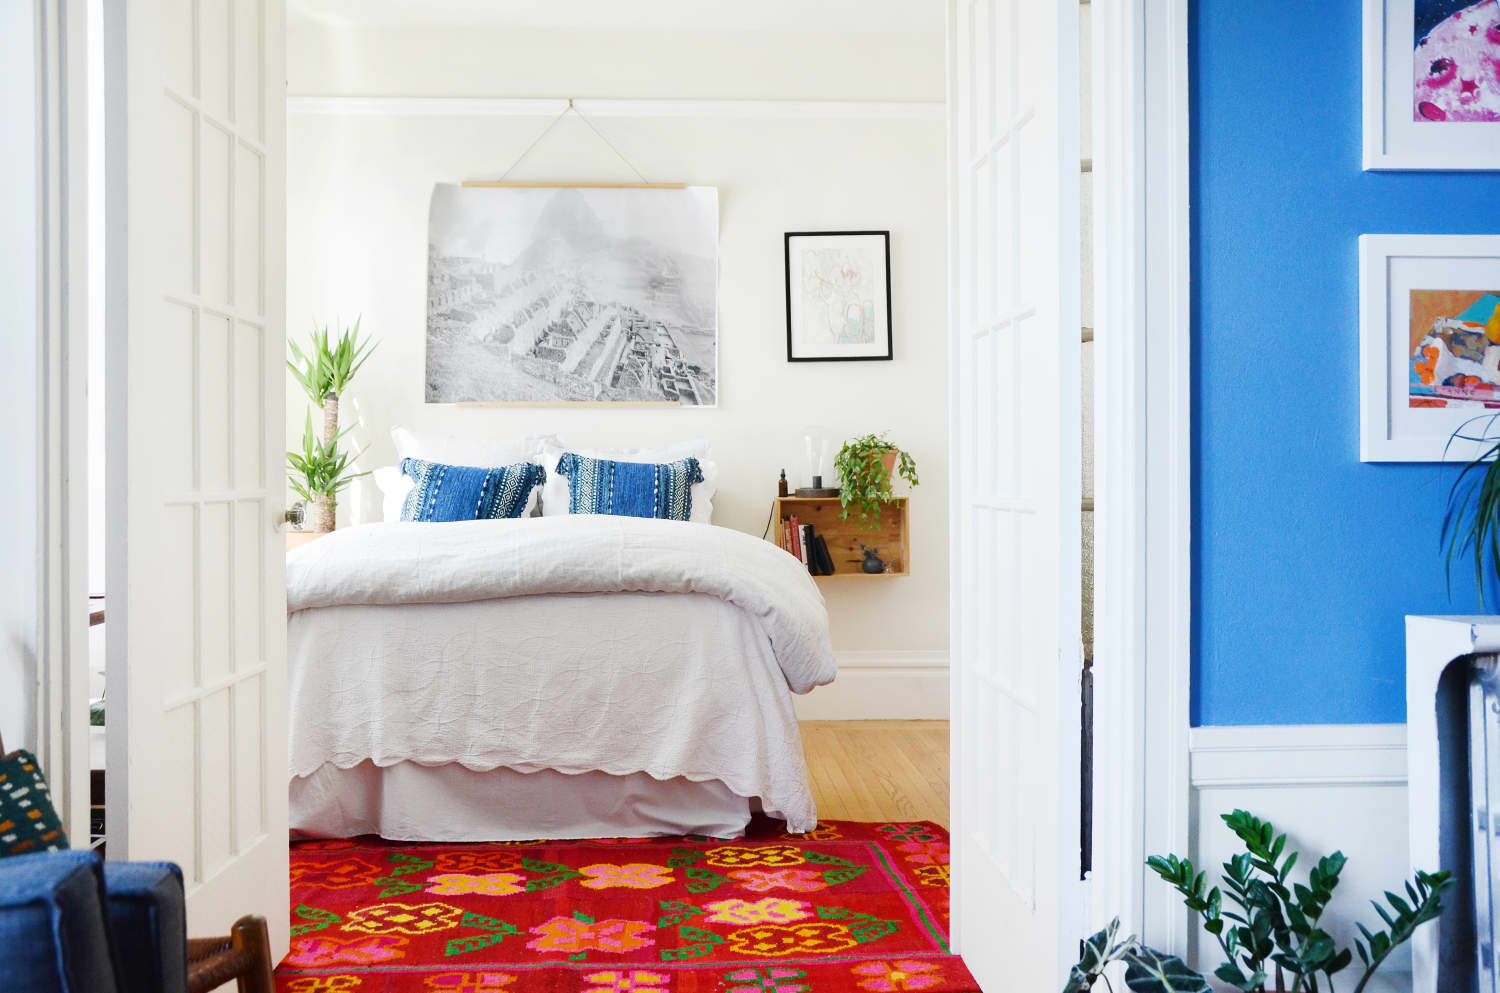 This $0 Decorating Idea Is the Easiest Ever Way to Fill a Bare Bedroom Wall